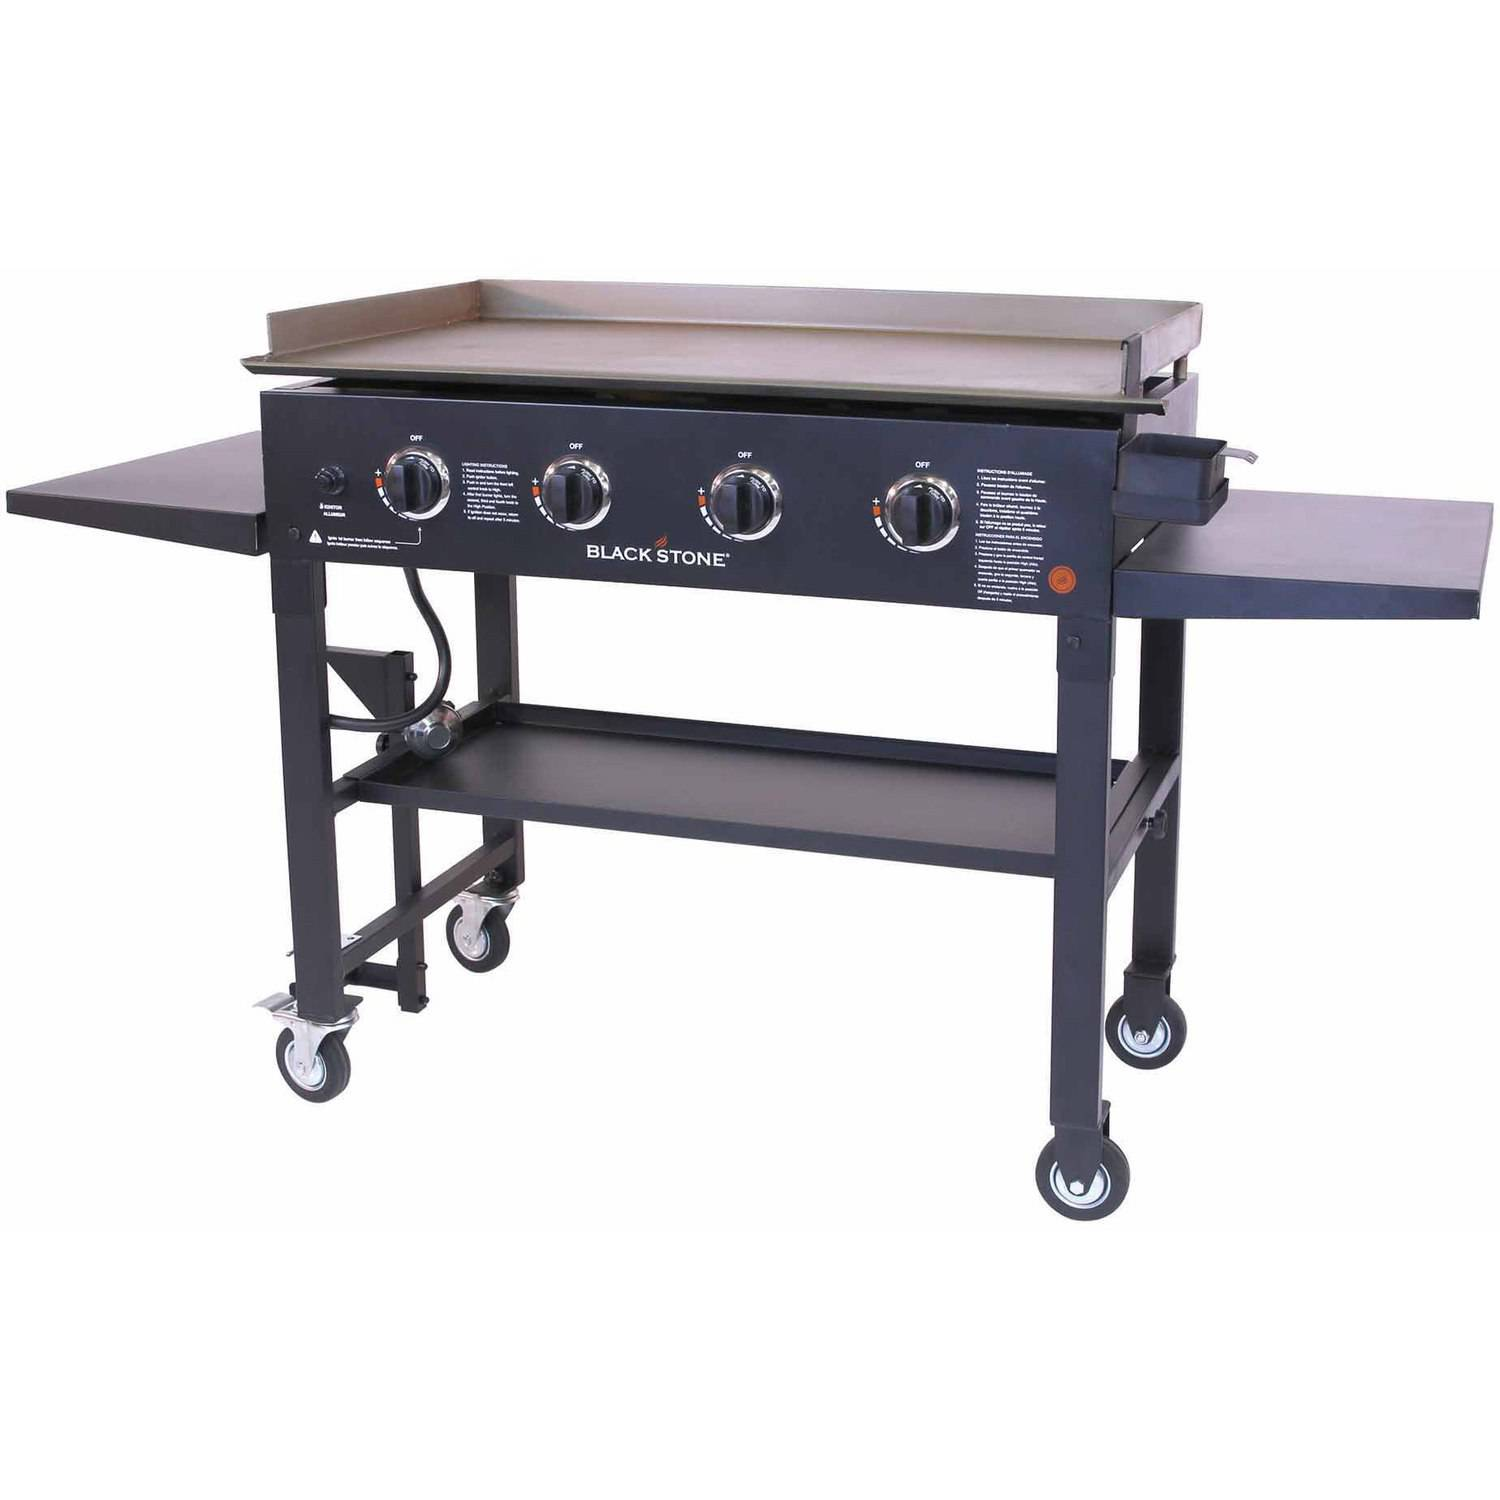 Blackstone 1554 36 Griddle Cooking Station Walmart Inventory